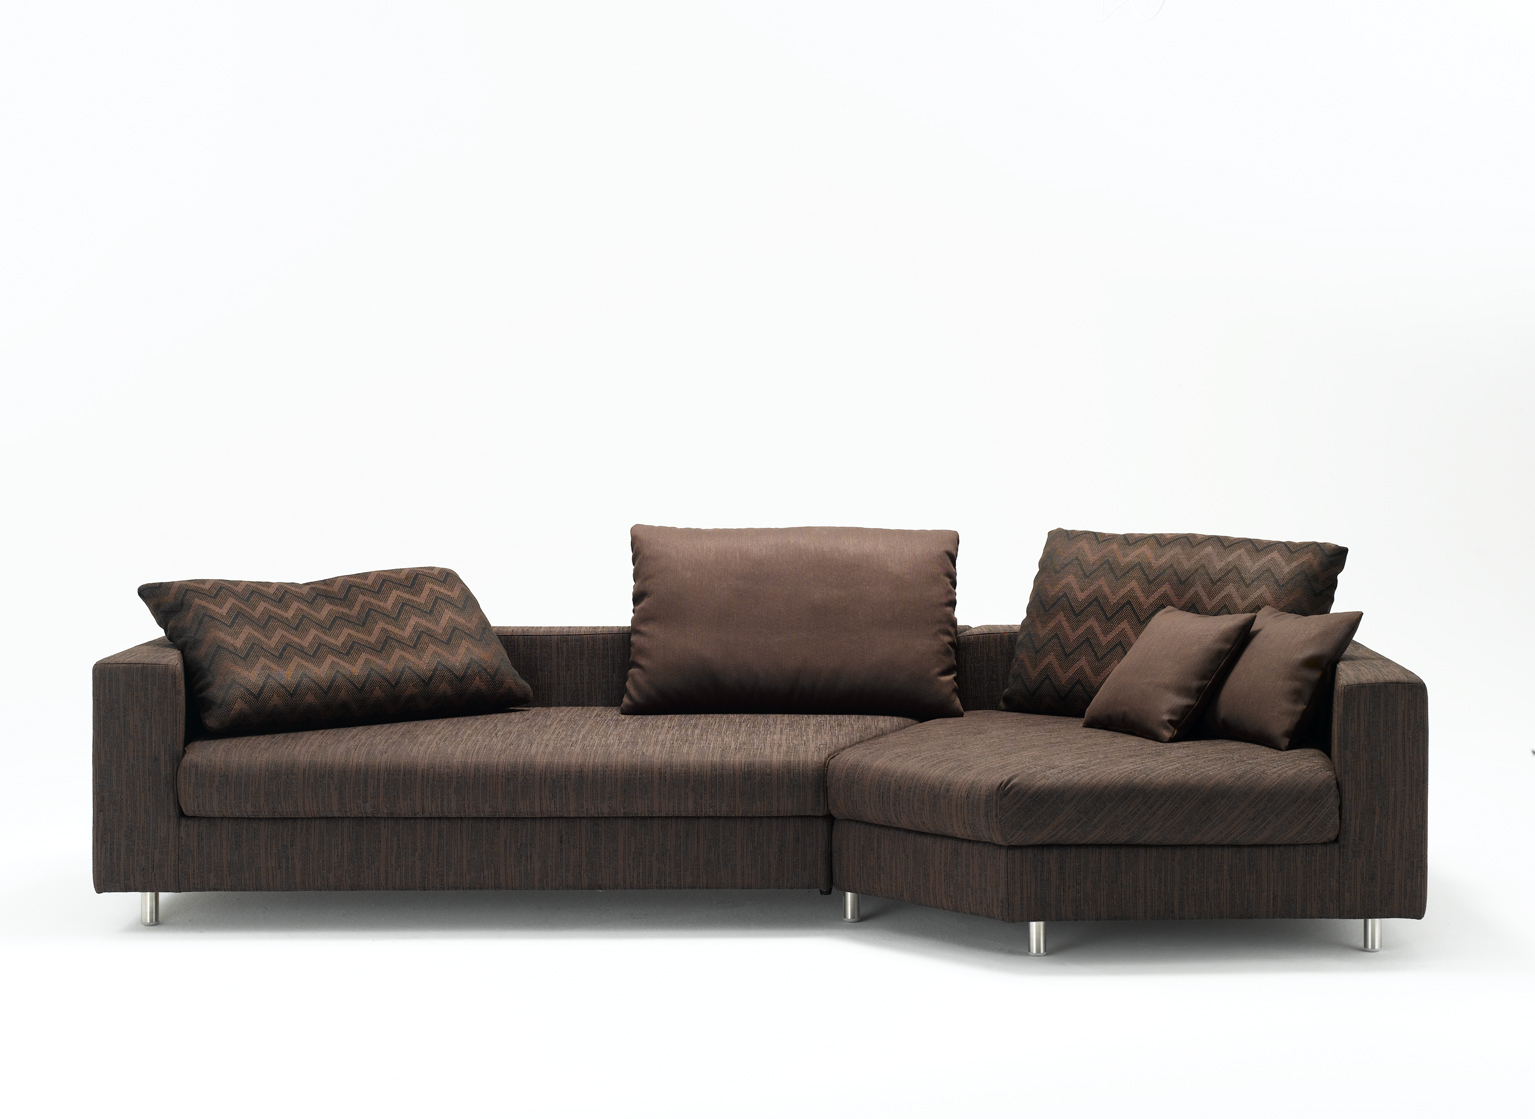 rolf benz sofa for the modern room style. Black Bedroom Furniture Sets. Home Design Ideas